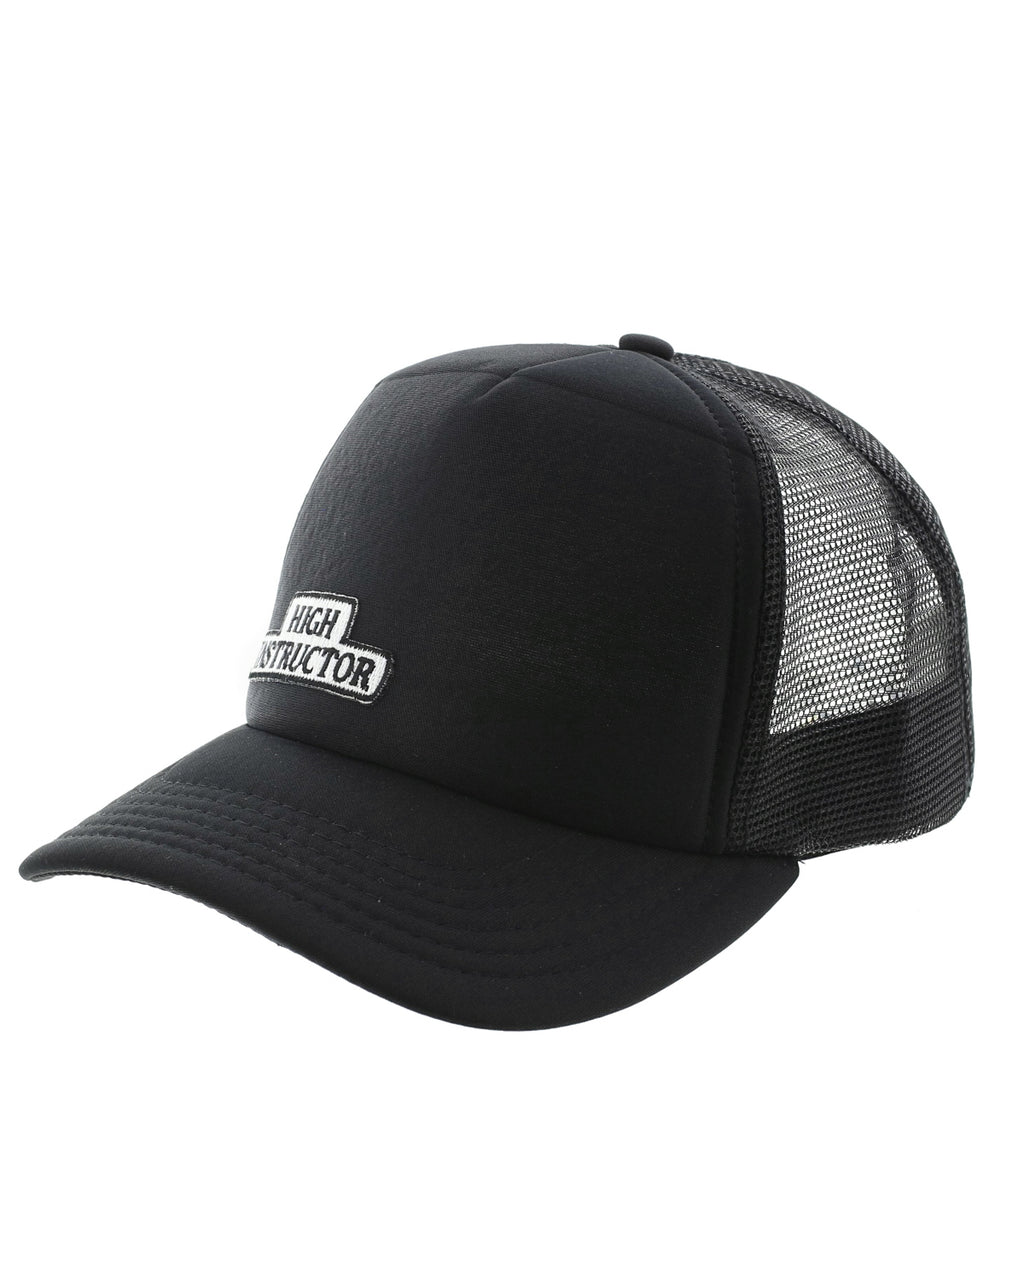 High Instructor Patch Trucker Hat